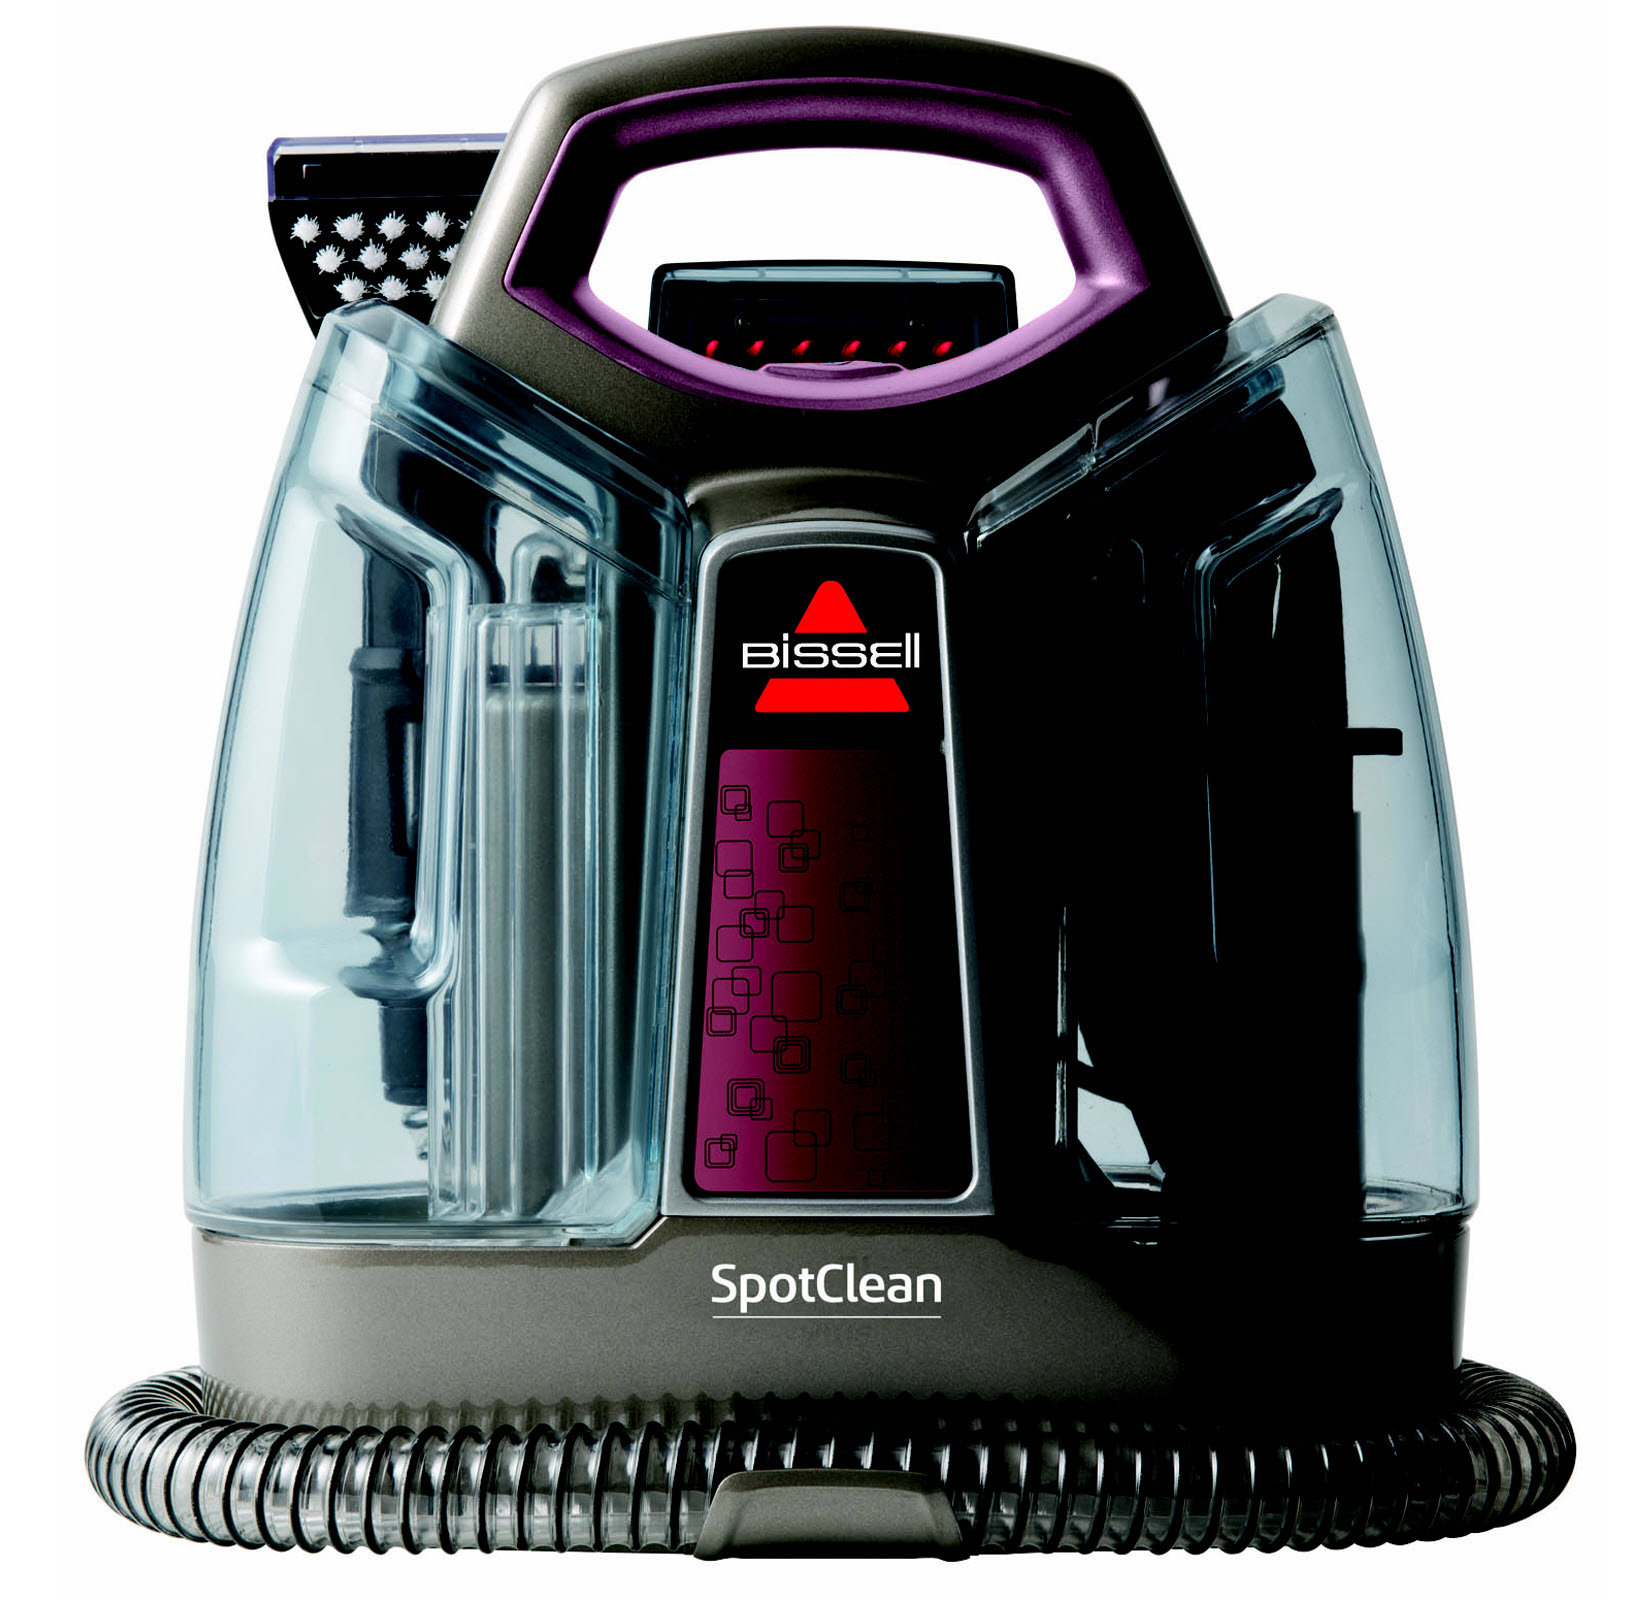 Bissell 5207 SpotClean Portable Carpet  Upholstery Cleaner